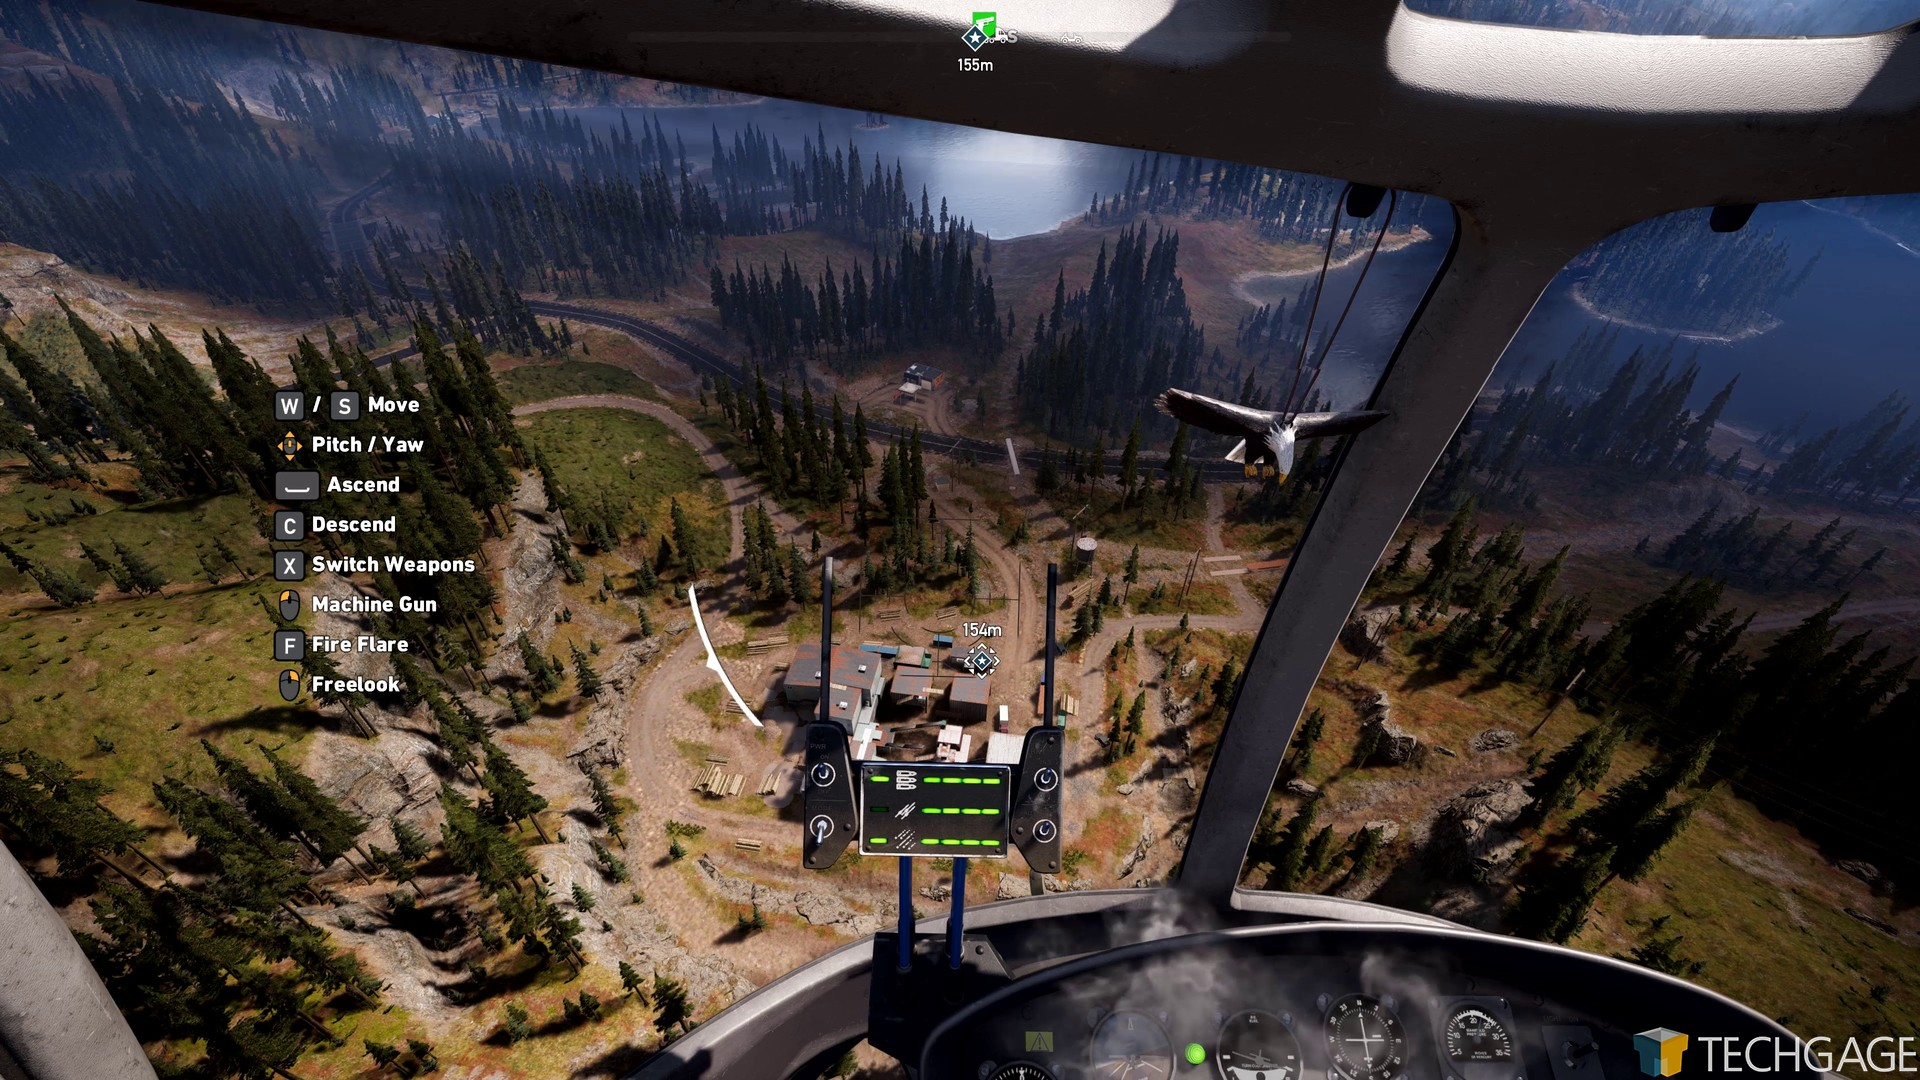 El mapa de Far Cry 5 es gigantesco.